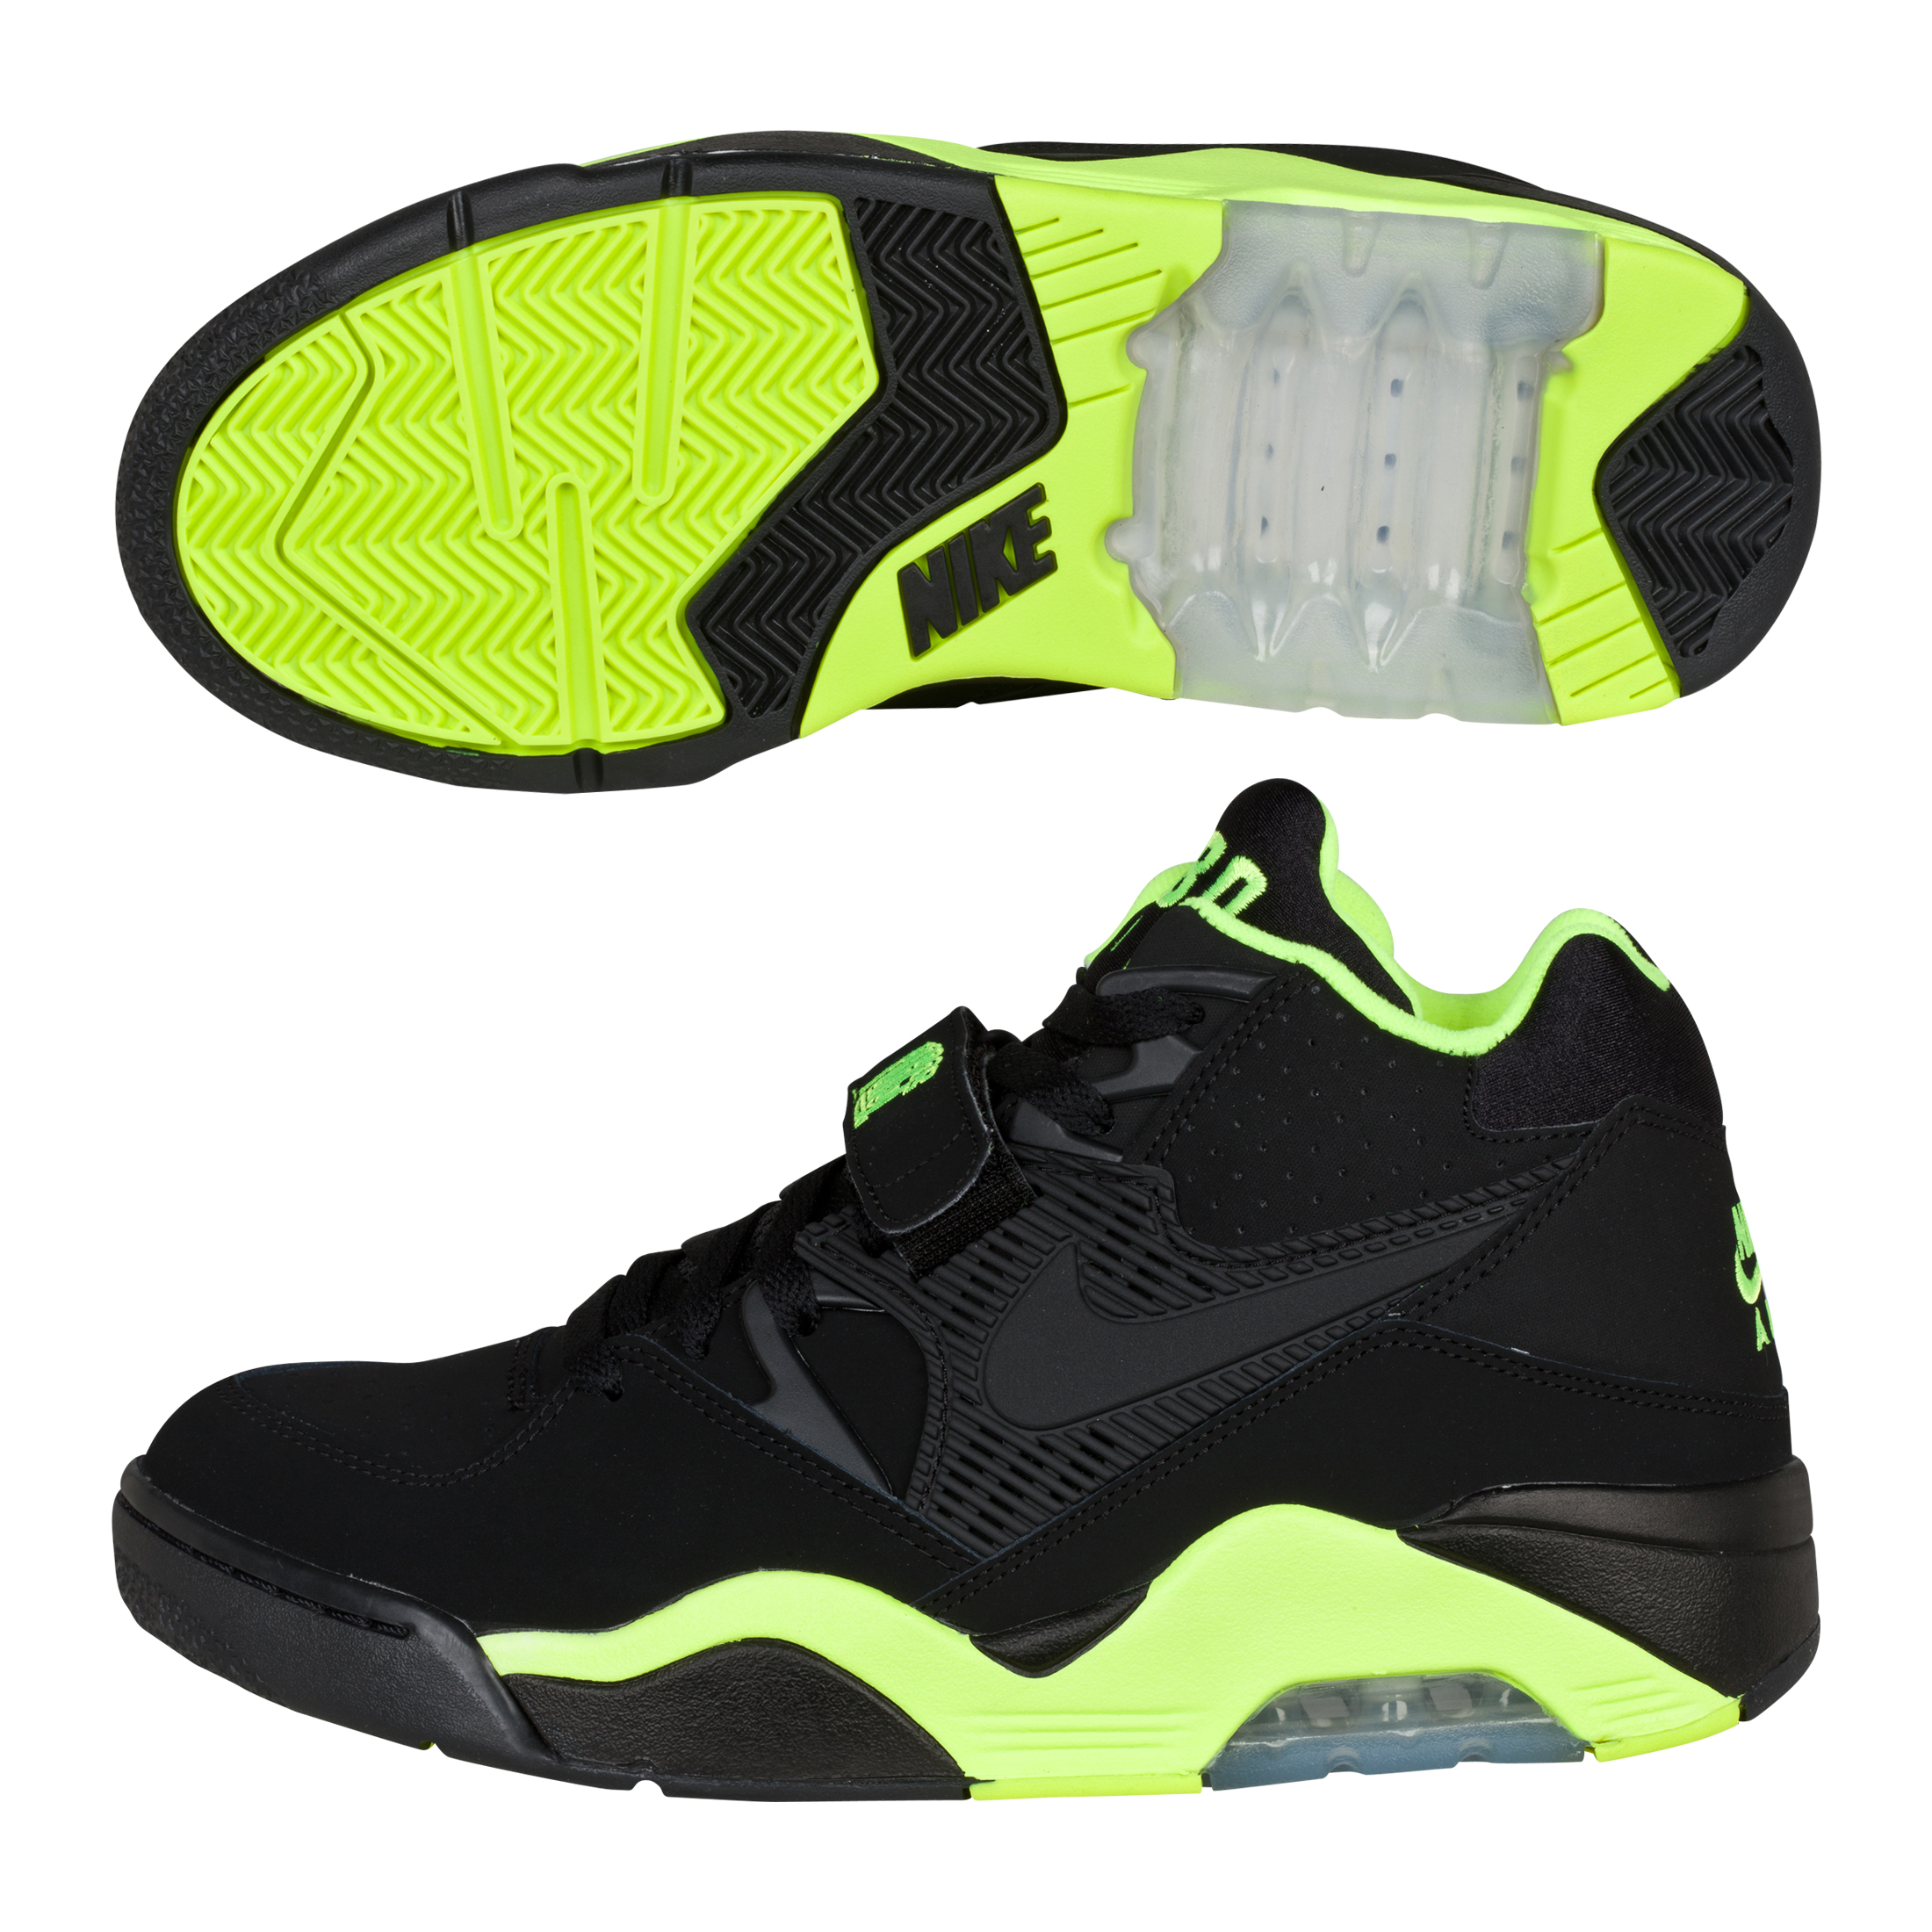 Nike Air Force 180 Trainers - Black/Black/Volt